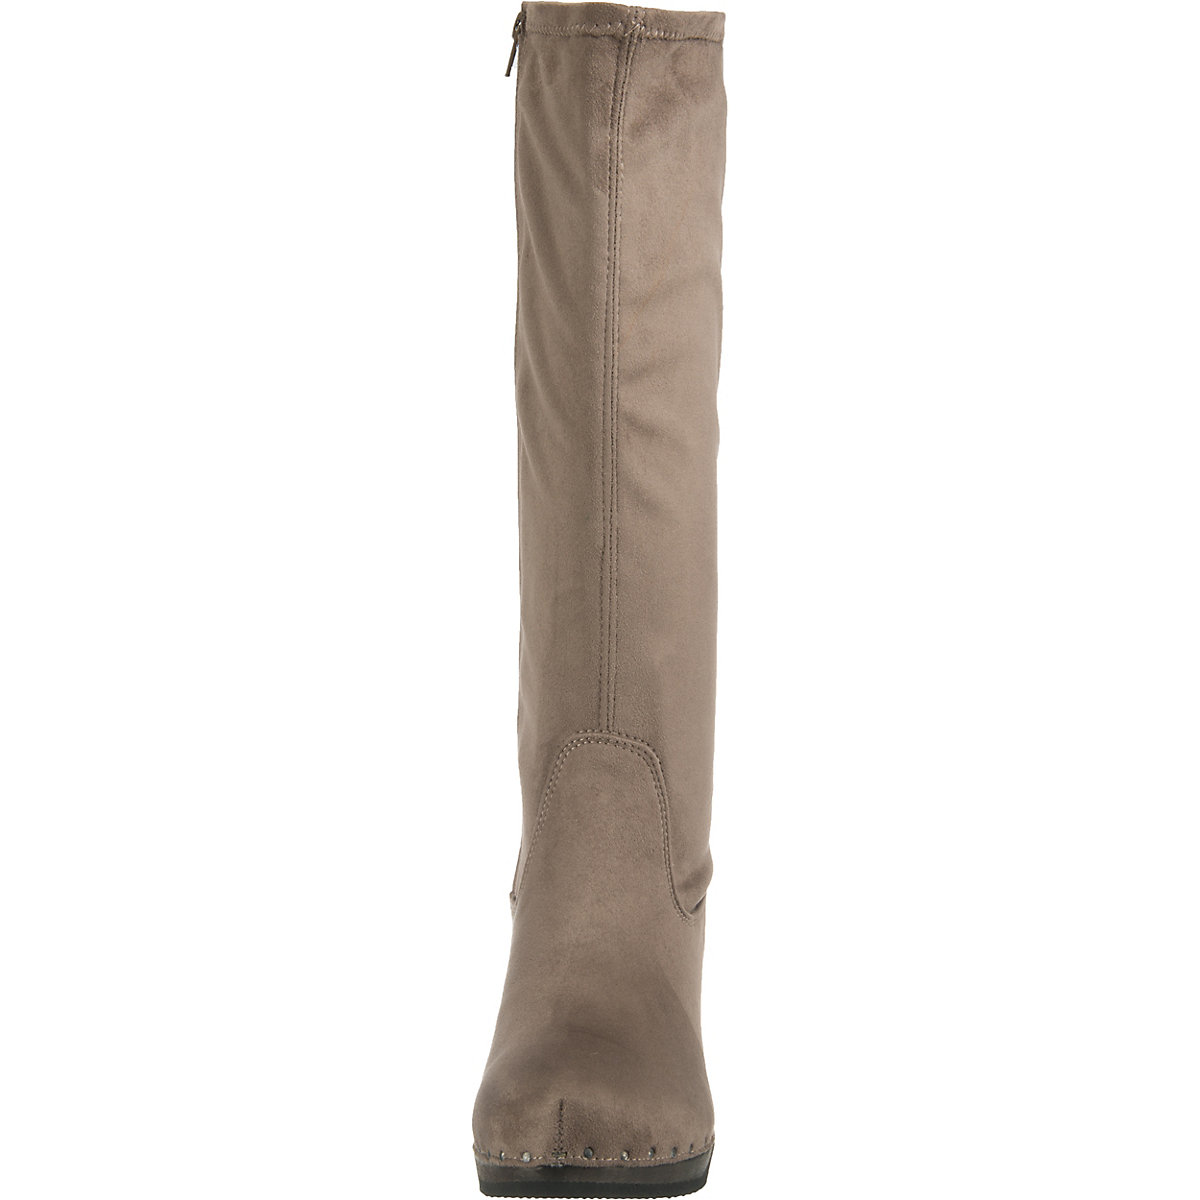 SOFTCLOX, Ginger Plateau-Stiefel, beige